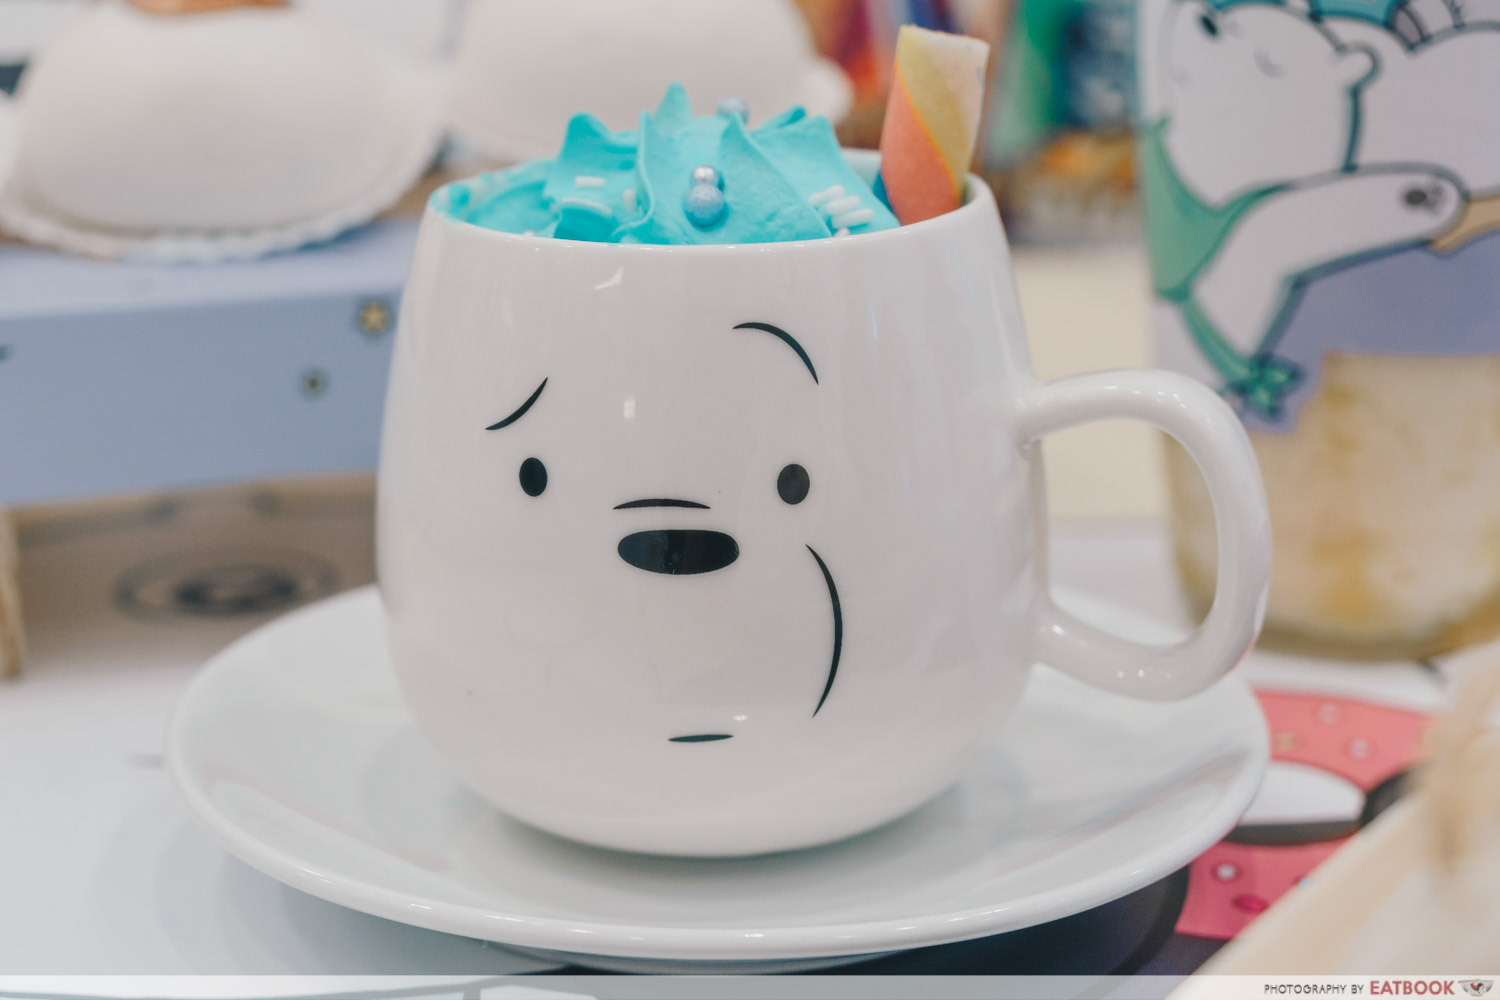 We Bare Bears Cafe - Too Cool Hot Latte